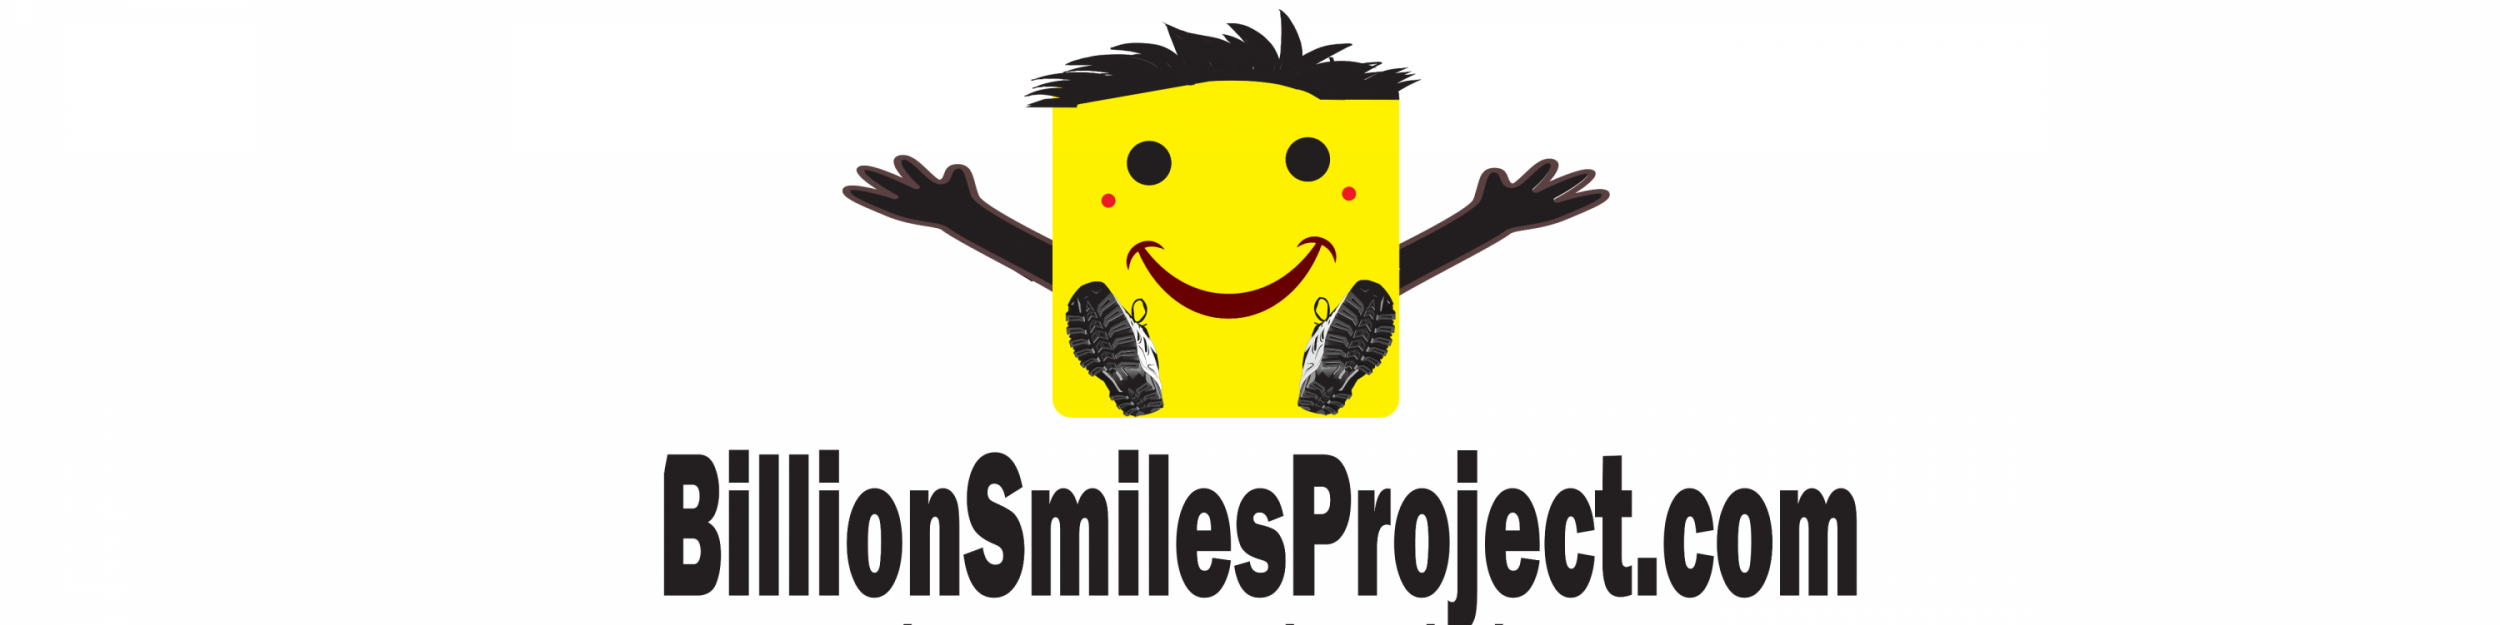 Billion Smiles Project.com